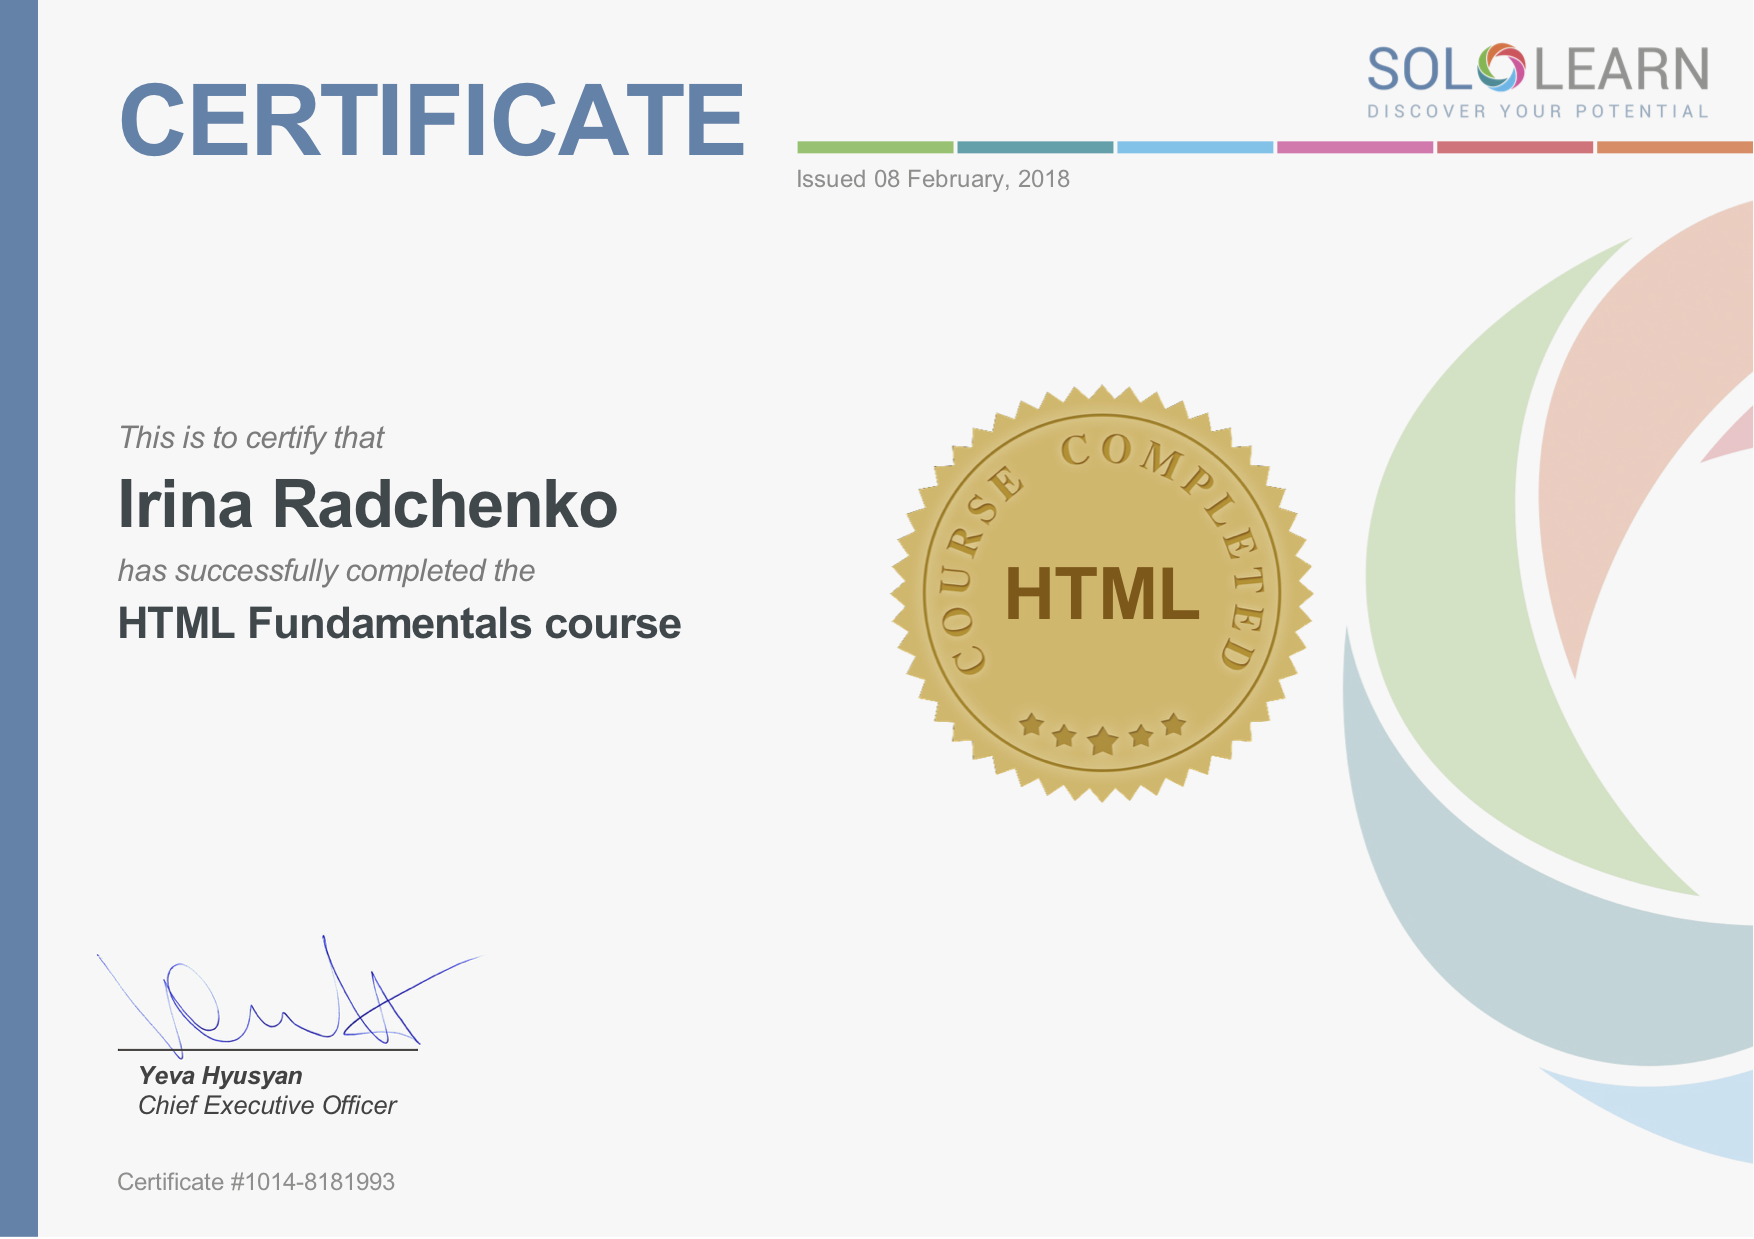 Html Fundamentals Course Https Www Sololearn Com Certificate 1014 8181993 Pdf Solo Learn Learn To Code Php Tutorial